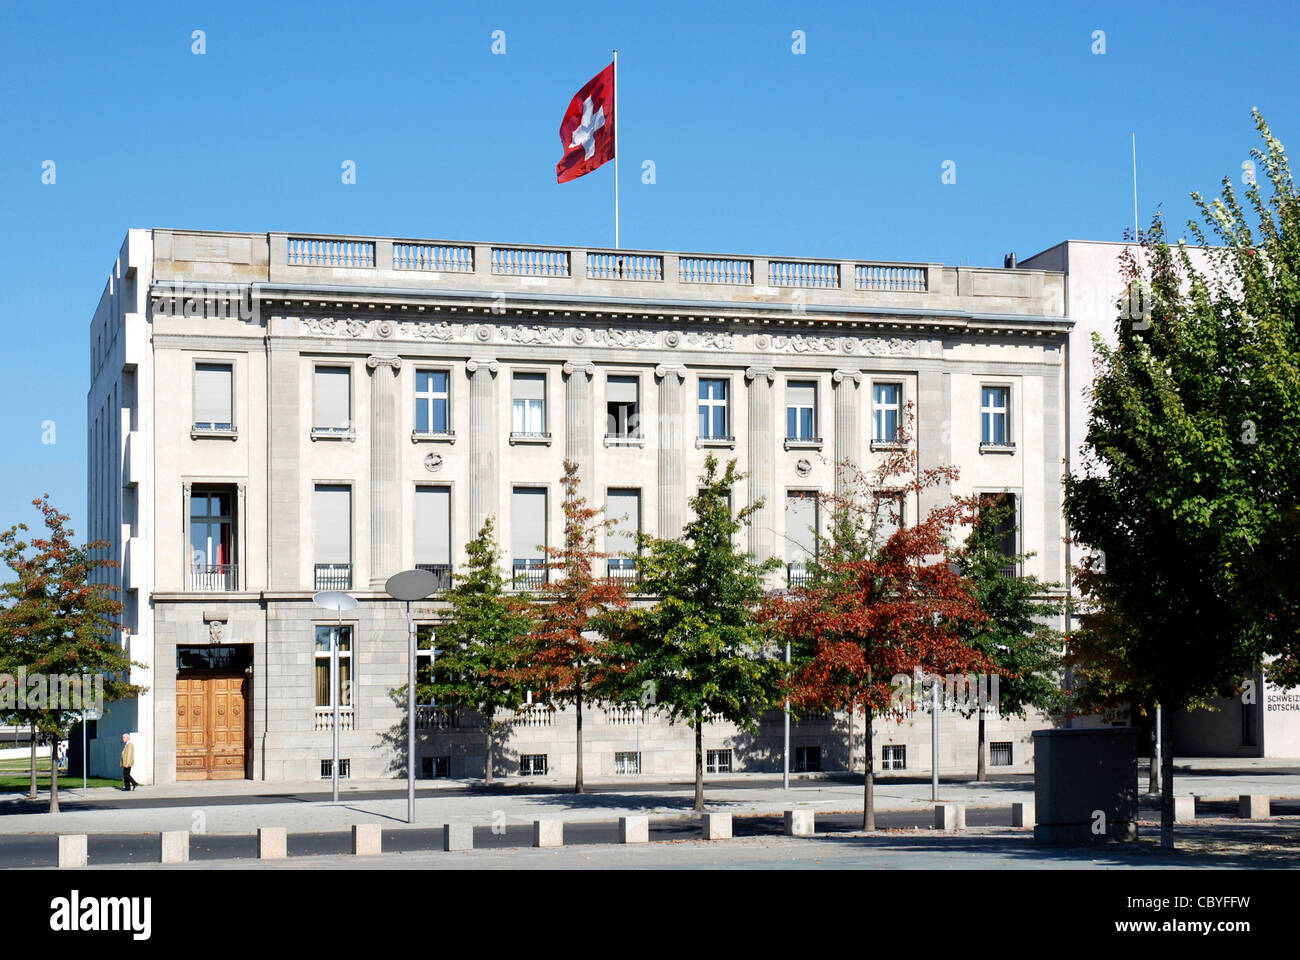 Embassy of Switzerland in Berlin with the Swiss national flag. - Stock Image